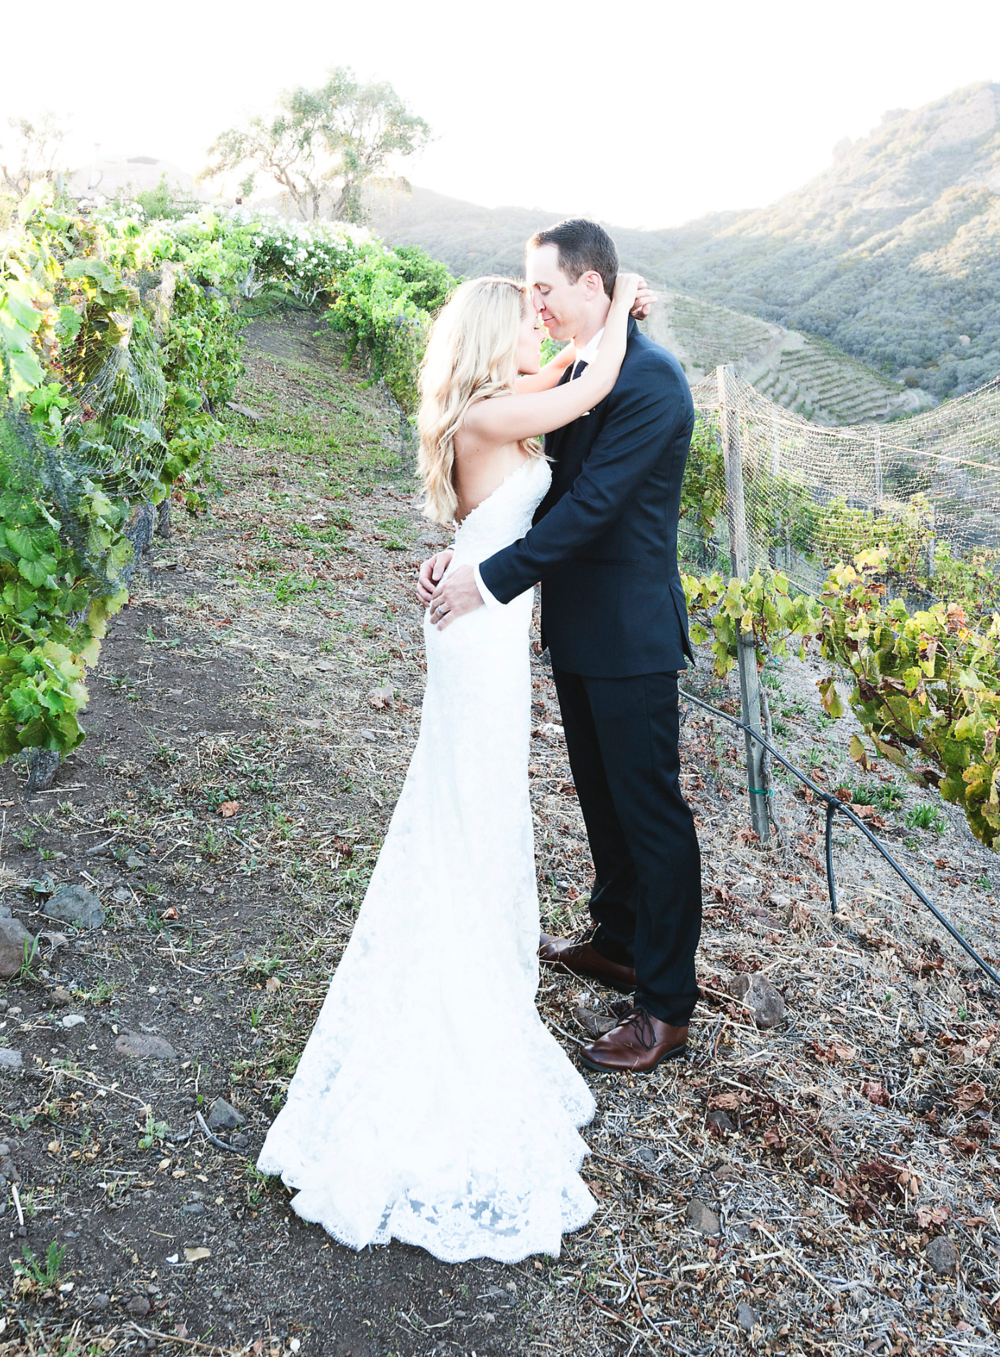 Jeff & Alicia | Fall 2015 wedding at Saddle Rock Ranch in Malibu, California